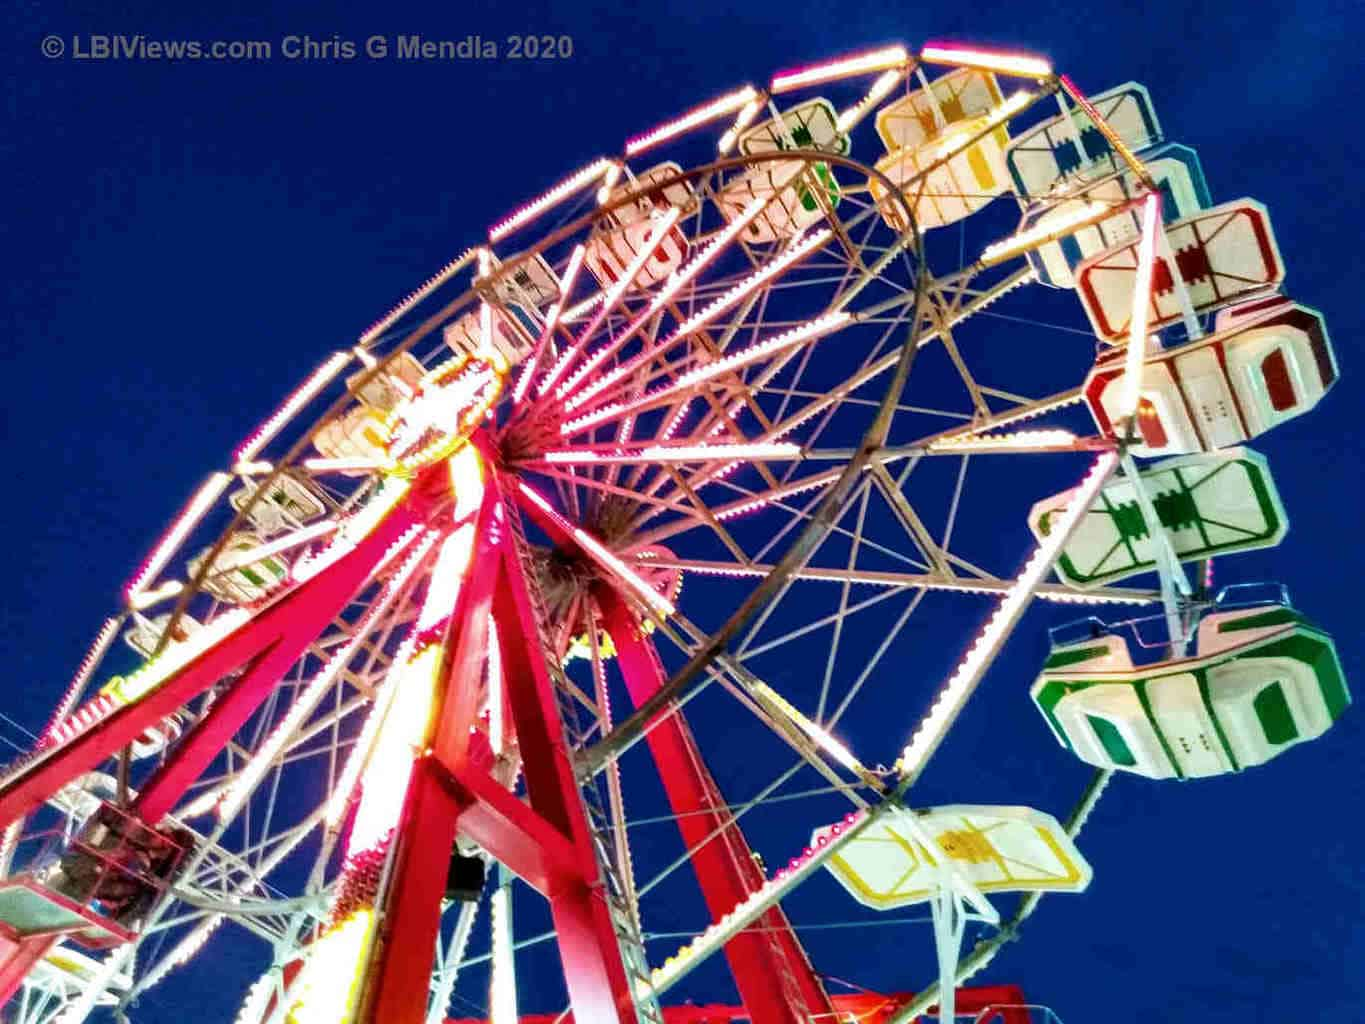 Ferris Wheel - Fantasy Island in Beach Haven on LBI 2020